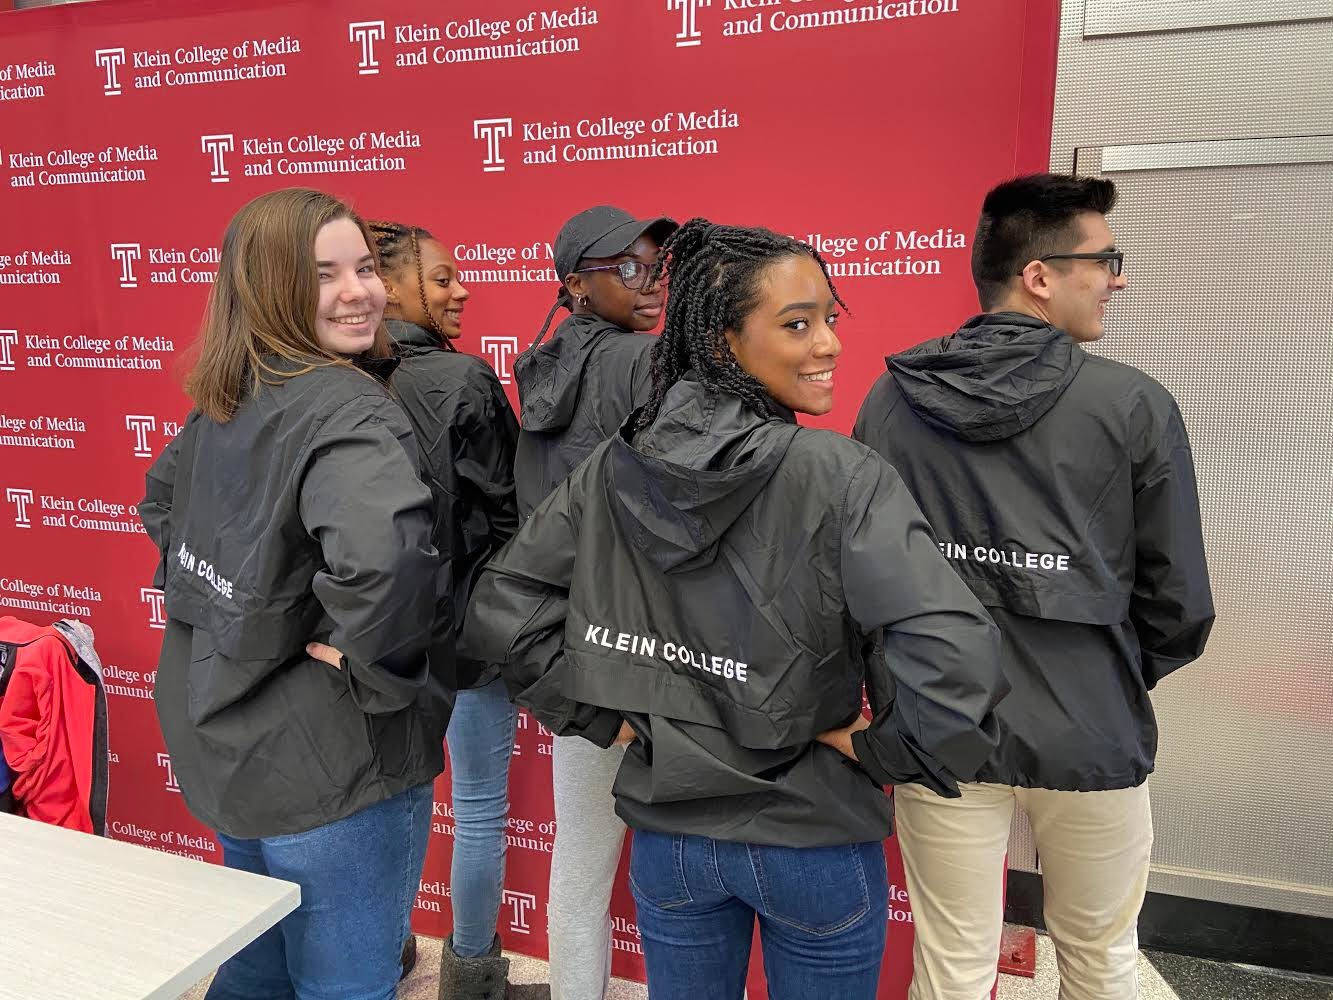 Klein College seniors participating in the TU Public Relations Bateman Competition pose with their Klein jackets.